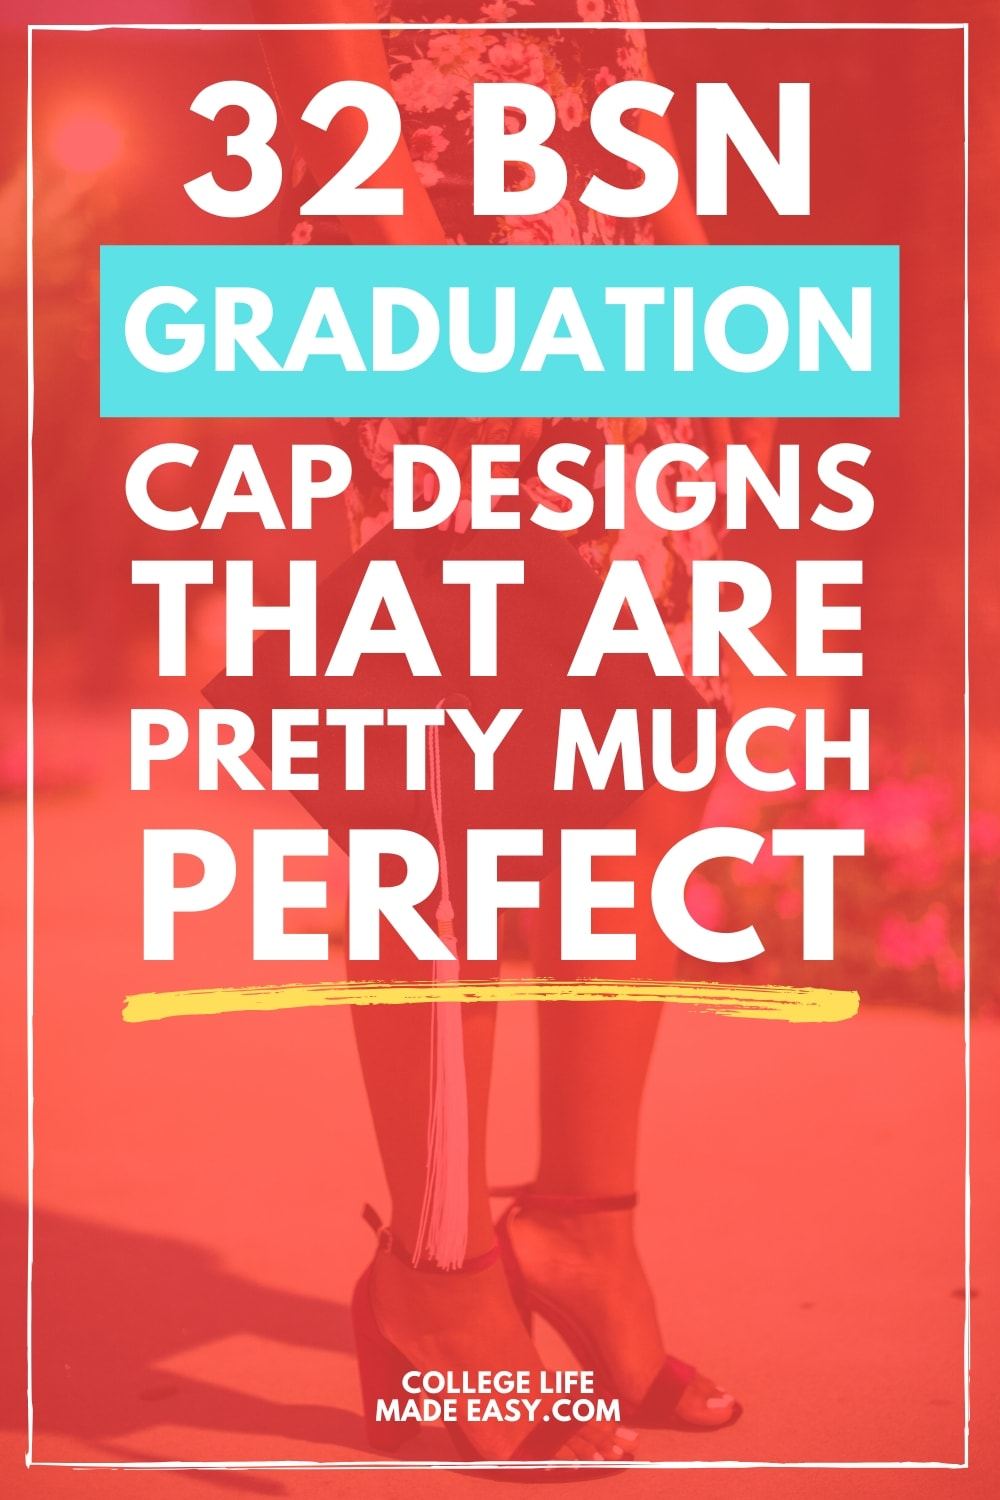 BSN graduation cap designs that are pretty much perfect - Pinterest graphic